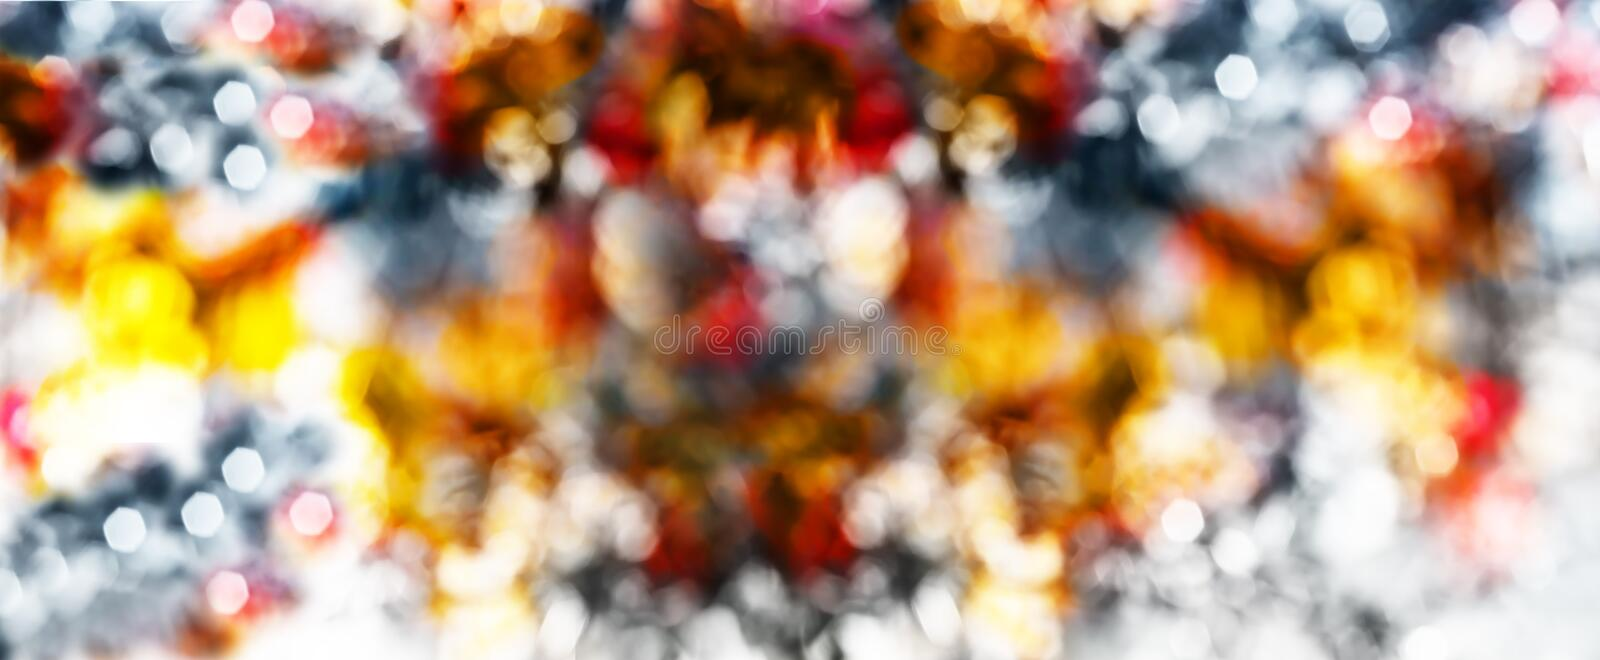 Colorful blur defocused image. Abstract background colorful blur defocused image stock images